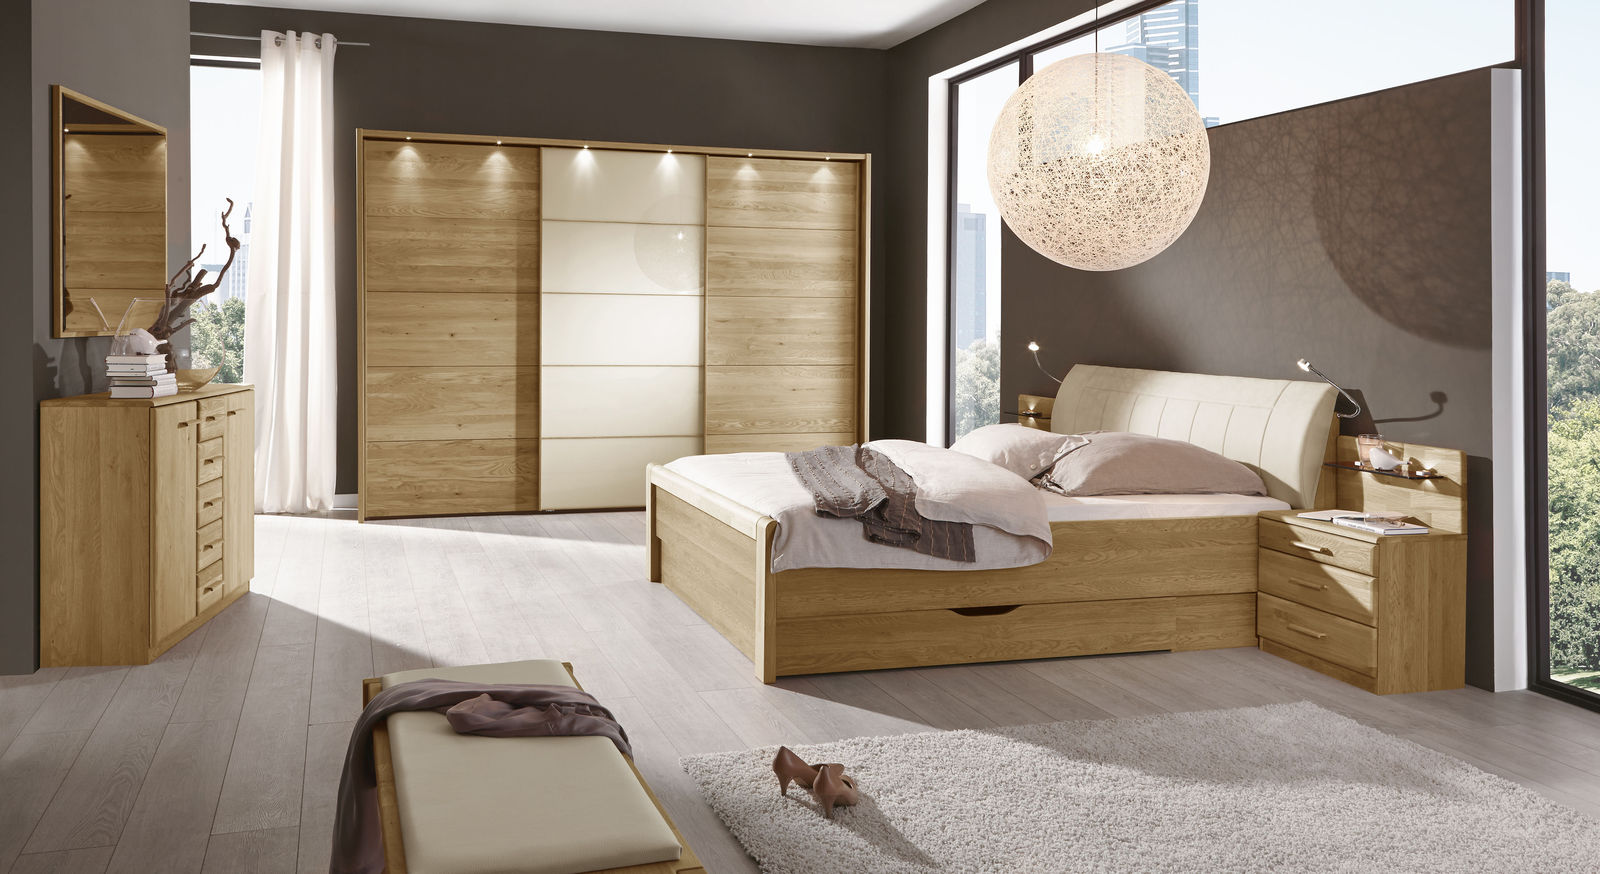 design schlafzimmer komplett. Black Bedroom Furniture Sets. Home Design Ideas